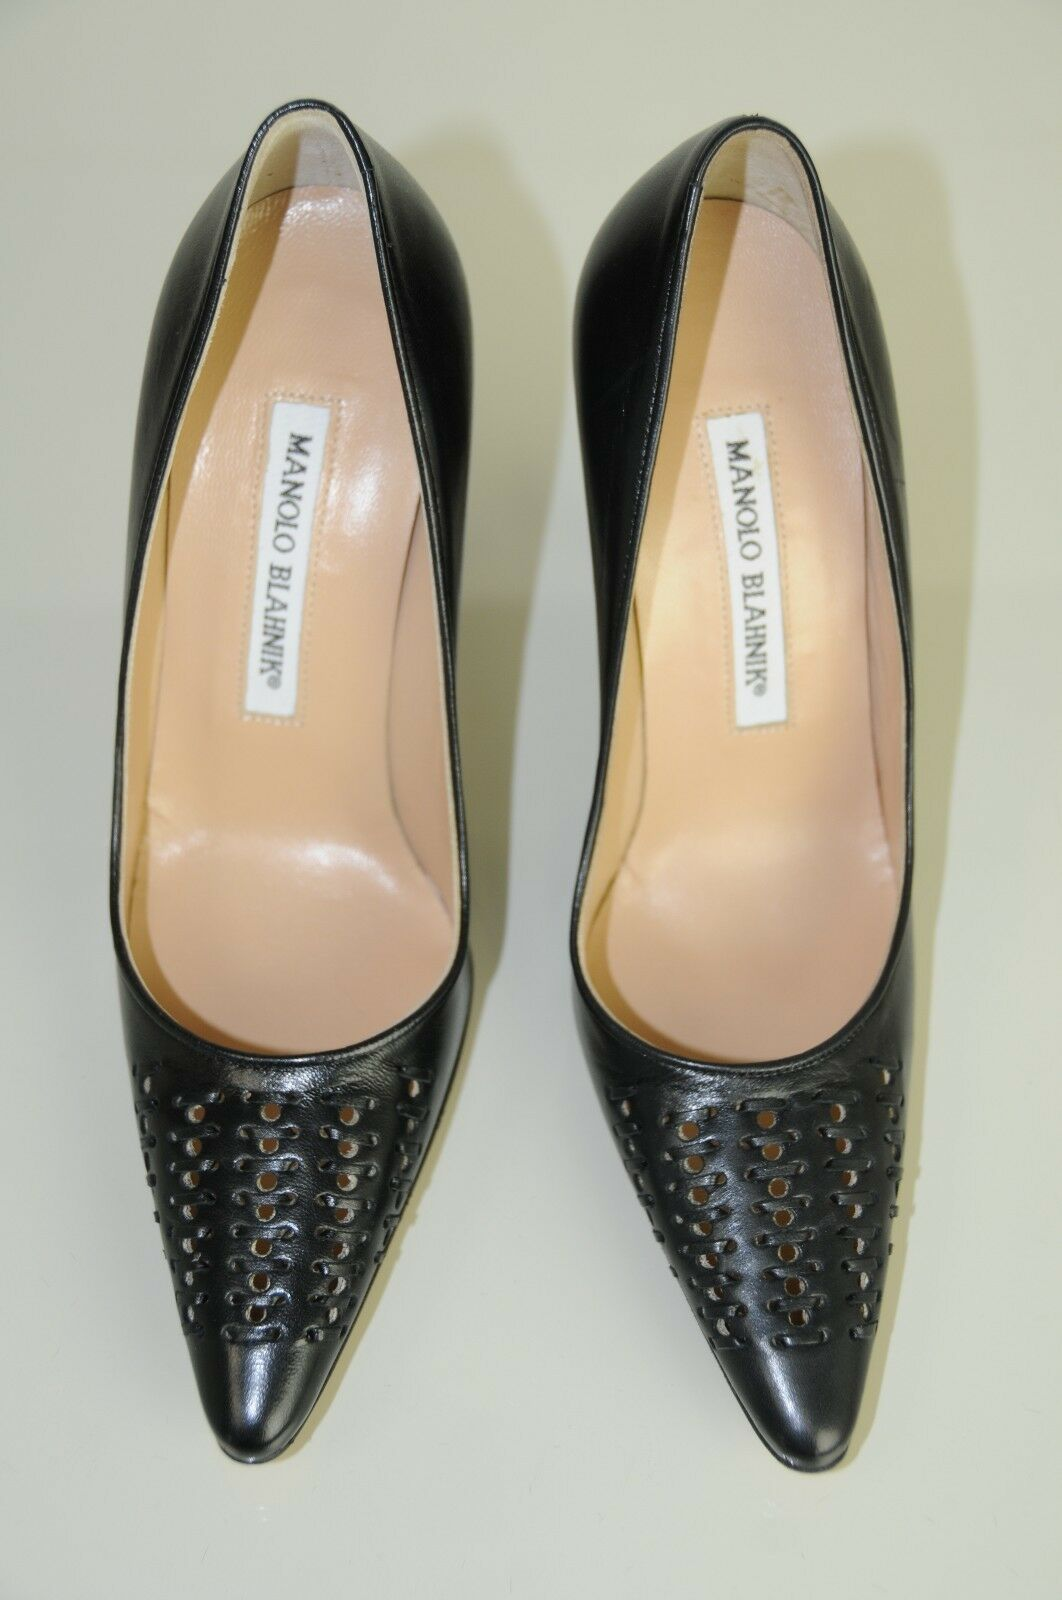 New Manolo Blahnik Straw BB Black Nude Insole Insole Insole shoes Heels 105 Pumps 35.5 5 b3faf6